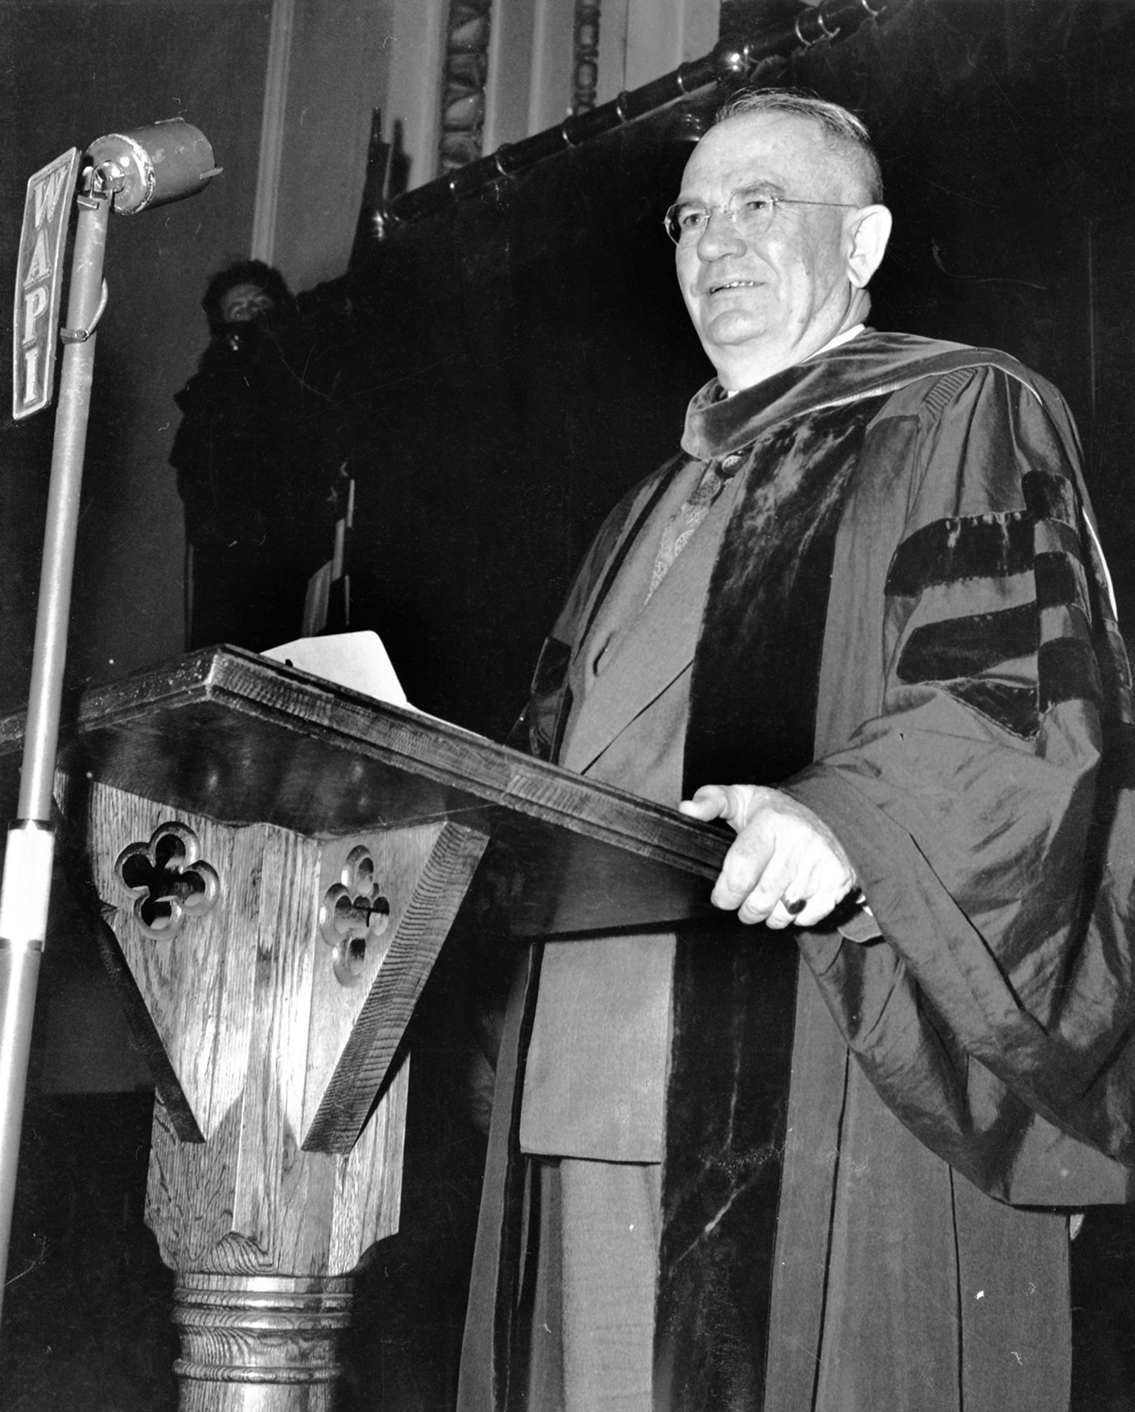 1943- Governor Chauncey Sparks Supports the Jones Bill to Establish a 4 Year Medical School in Birmingham